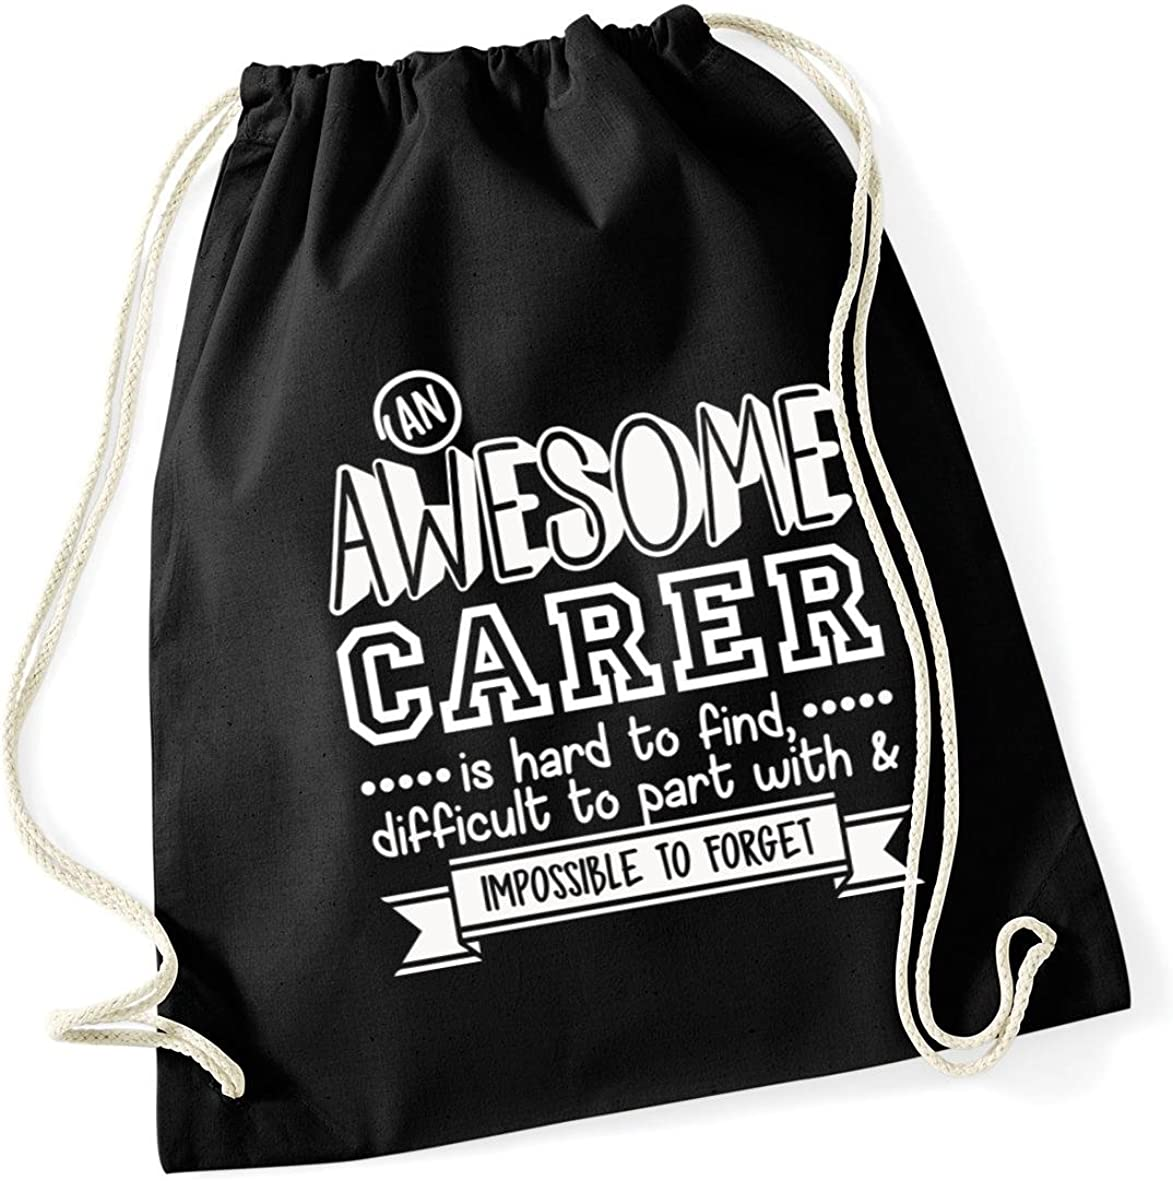 HippoWarehouse An Awesome Carer is Hard to Find 12 litres Difficult to Part With /& Impossible to Forget Drawstring Cotton School Gym Kid Bag Sack 37cm x 46cm